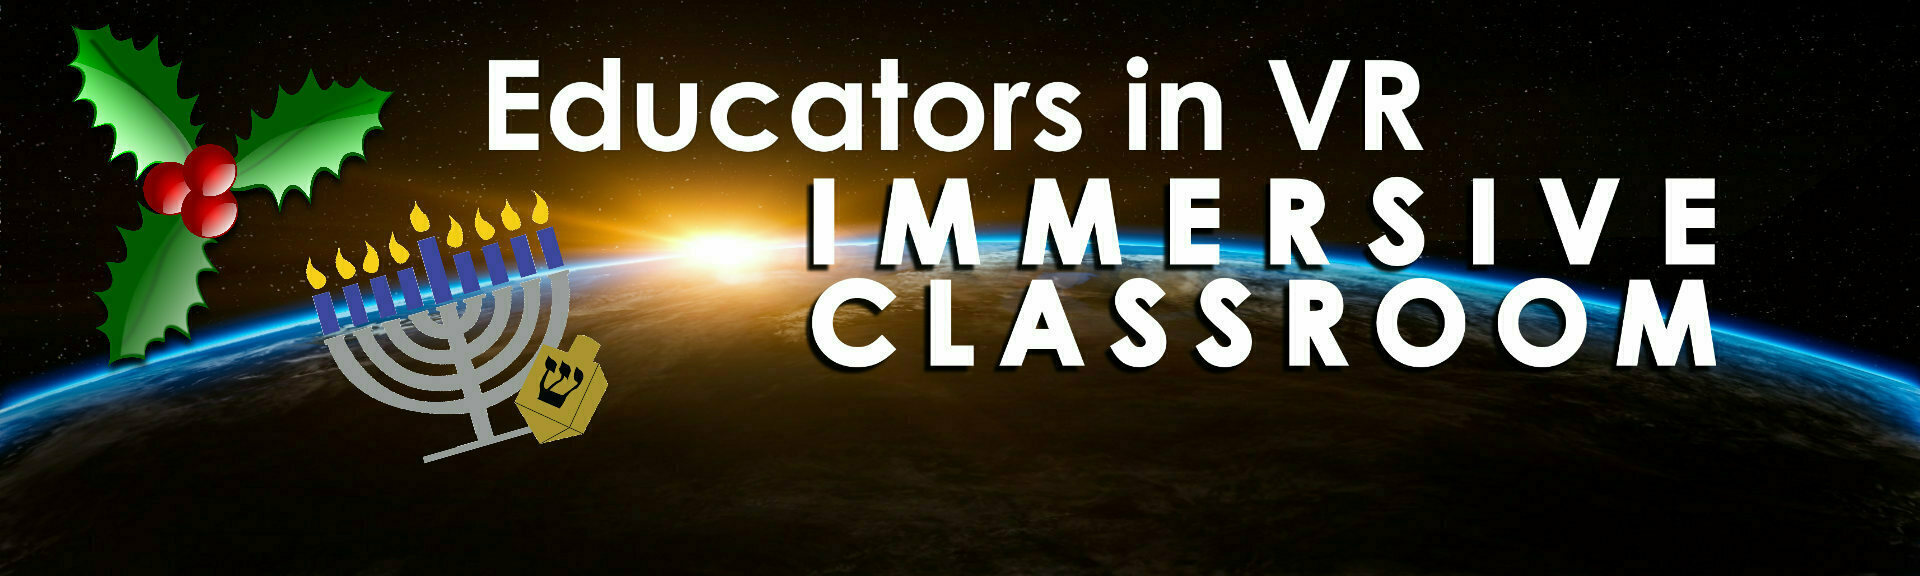 Educators in vr   immersive classroom holiday altspace banner